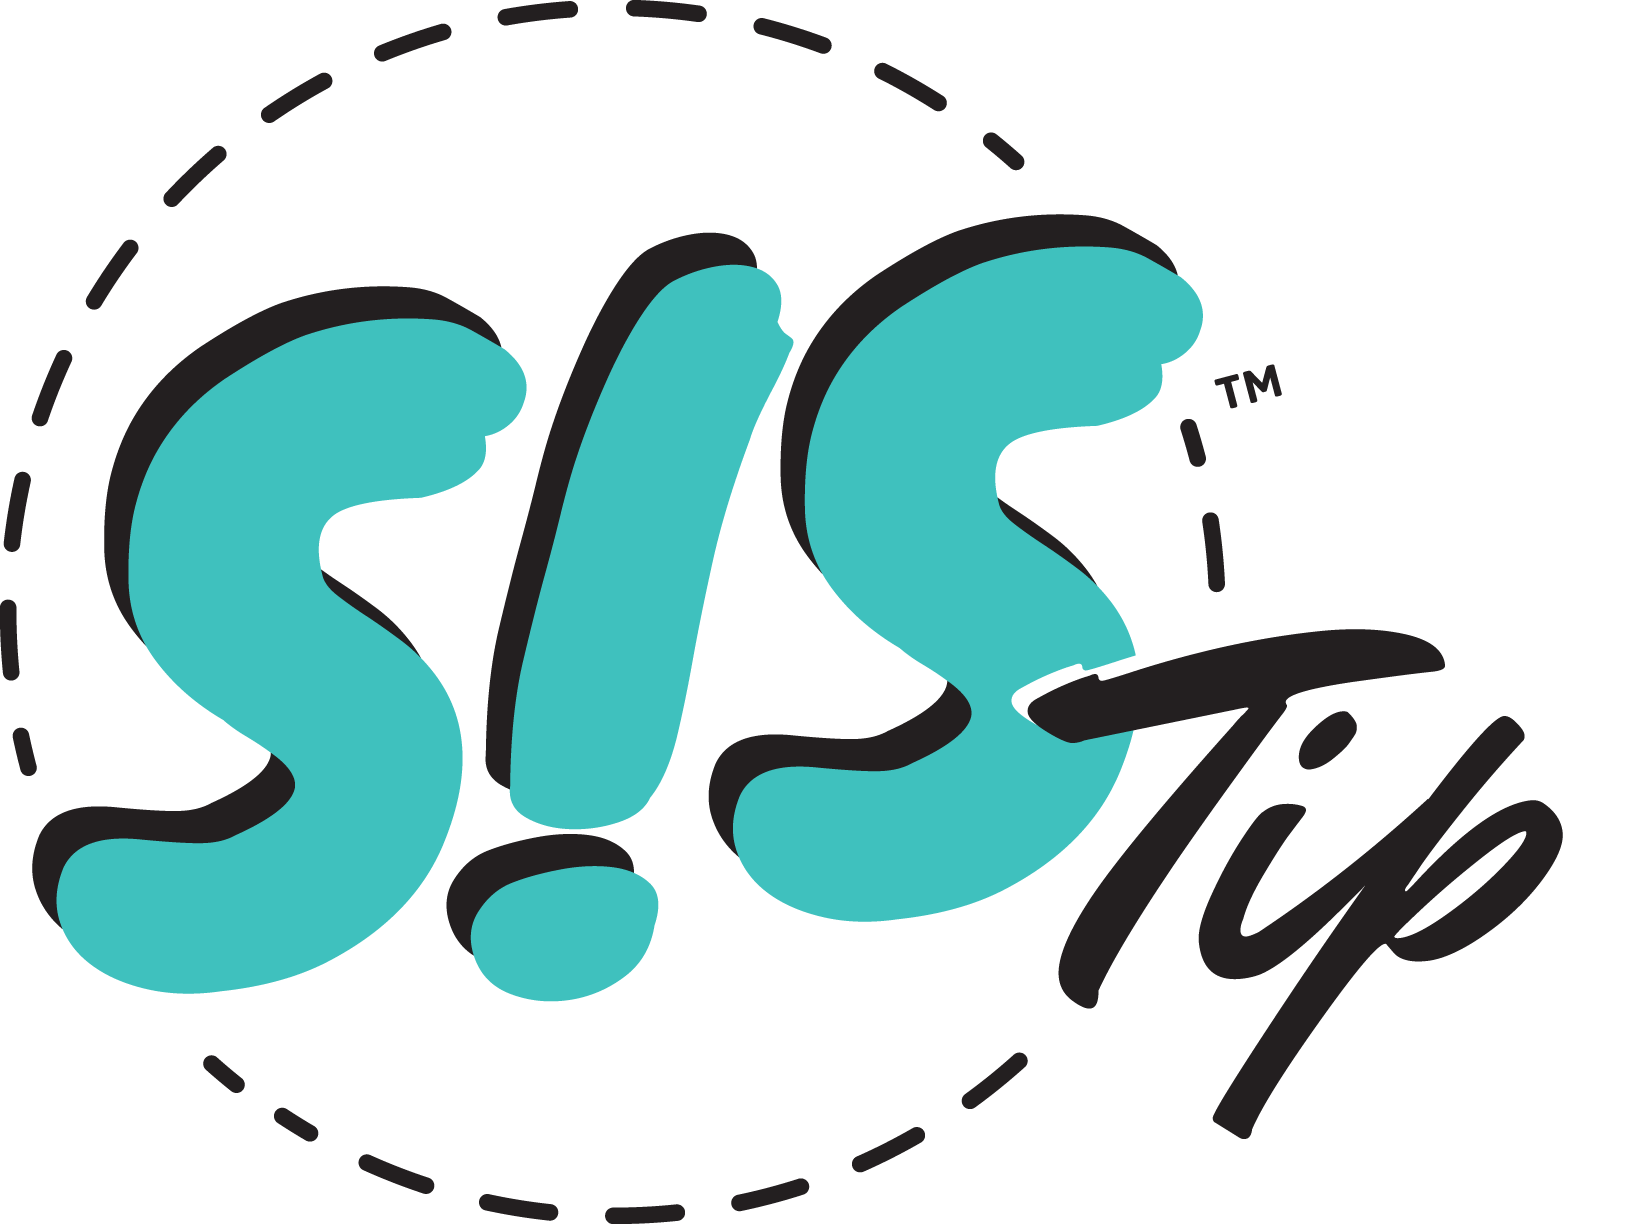 S!S Tip Sis Tip Logo by the Stitch it! Sisters at the Nancy Zieman Productions Blog